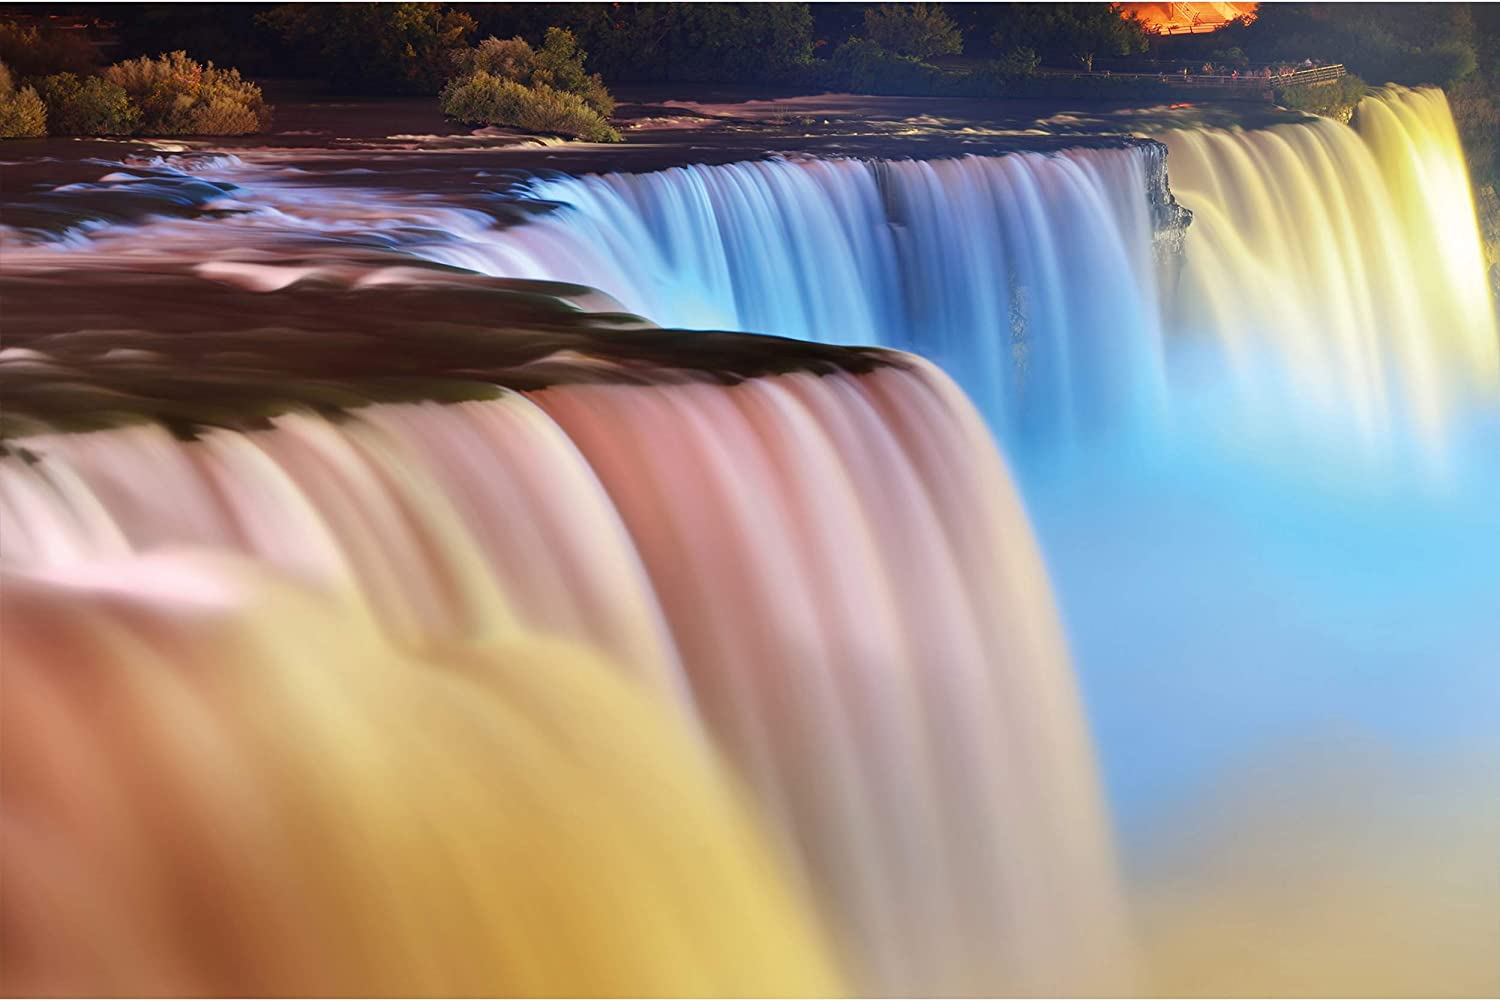 GREAT ART Poster – Niagara Falls – Picture Decoration Beautiful Waterfall Colorful Landmark America Canada River Huge Cascade Nature Image Photo Decor Wall Mural(55x39.4in - 140x100cm)